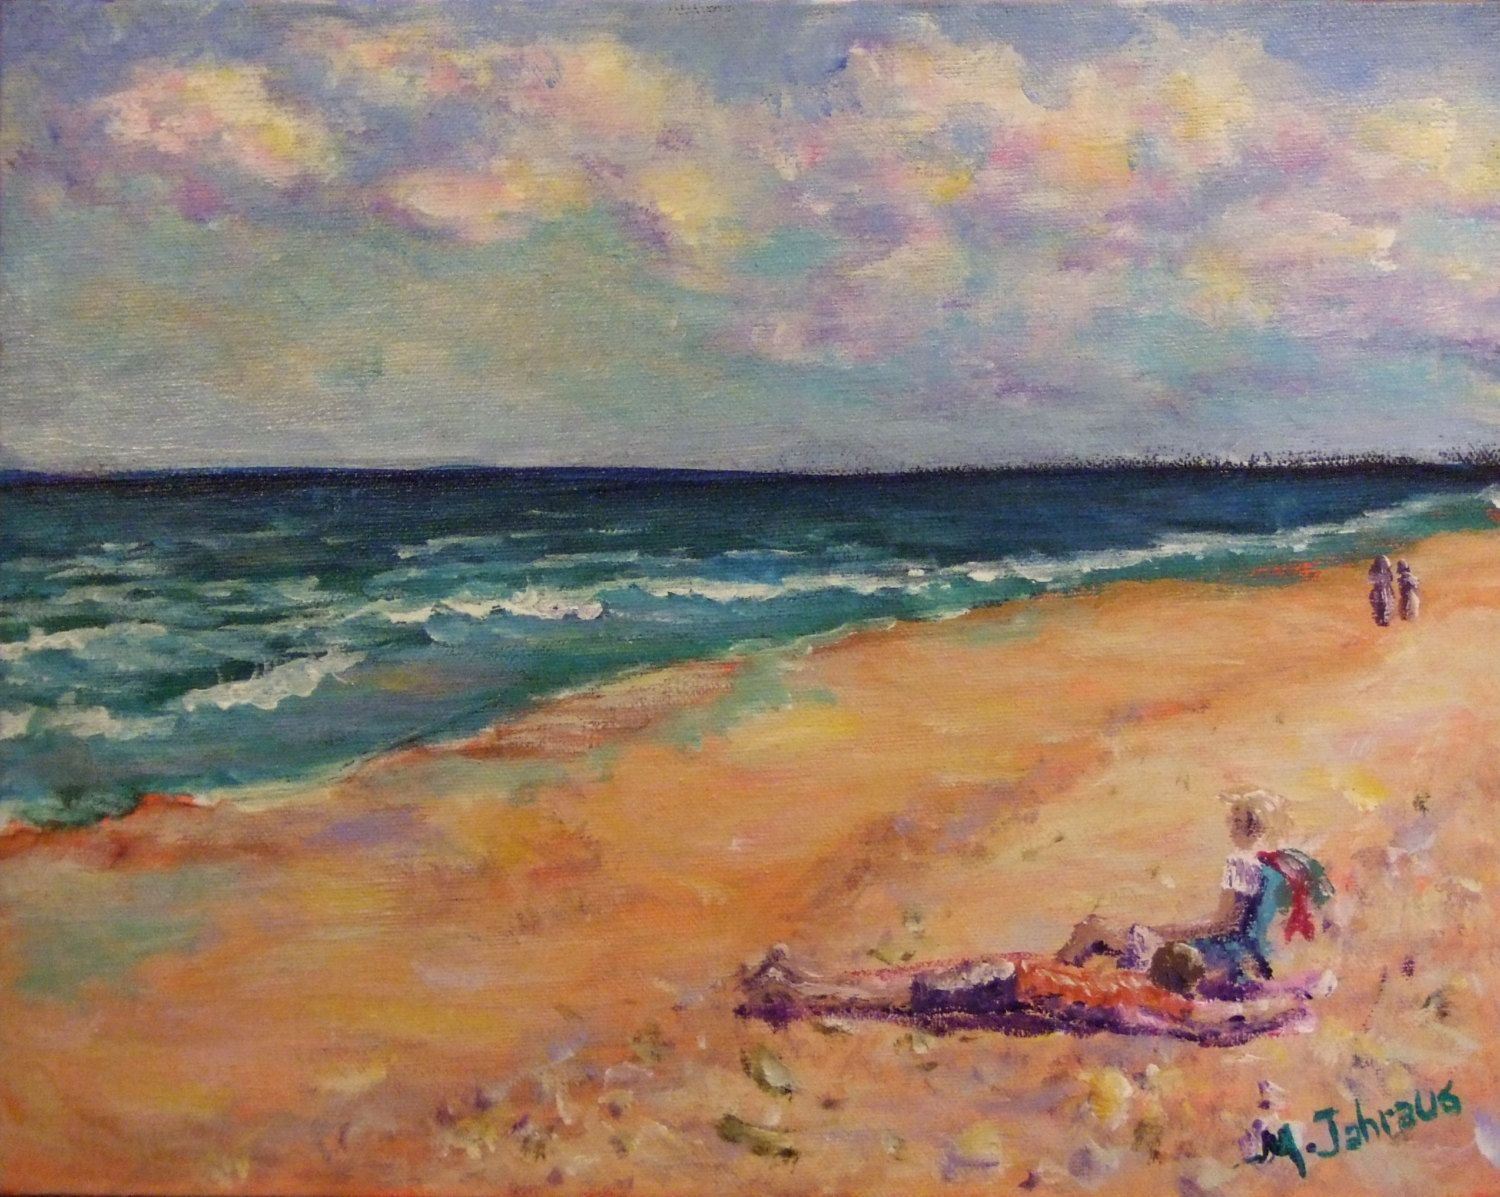 Vacation Dreaming 3 by ducktoswangallery on Etsy Dream